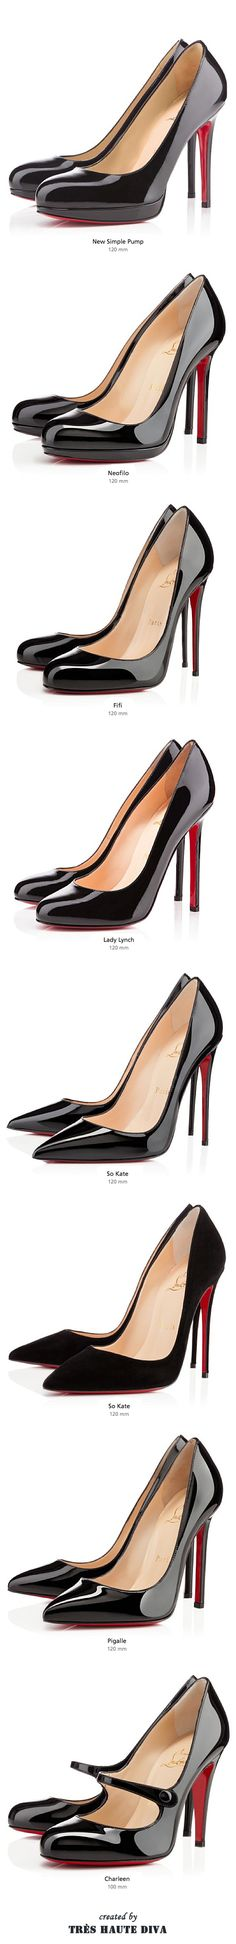 Crazy for Christian Louboutin high heels fashion red bottoms Stylish Men, Stylish Outfits, Birkenstock, Kids Fashion, Womens Fashion, Fashion Clothes, Christian Louboutin Shoes, Louboutin Pumps, Fashion Lookbook